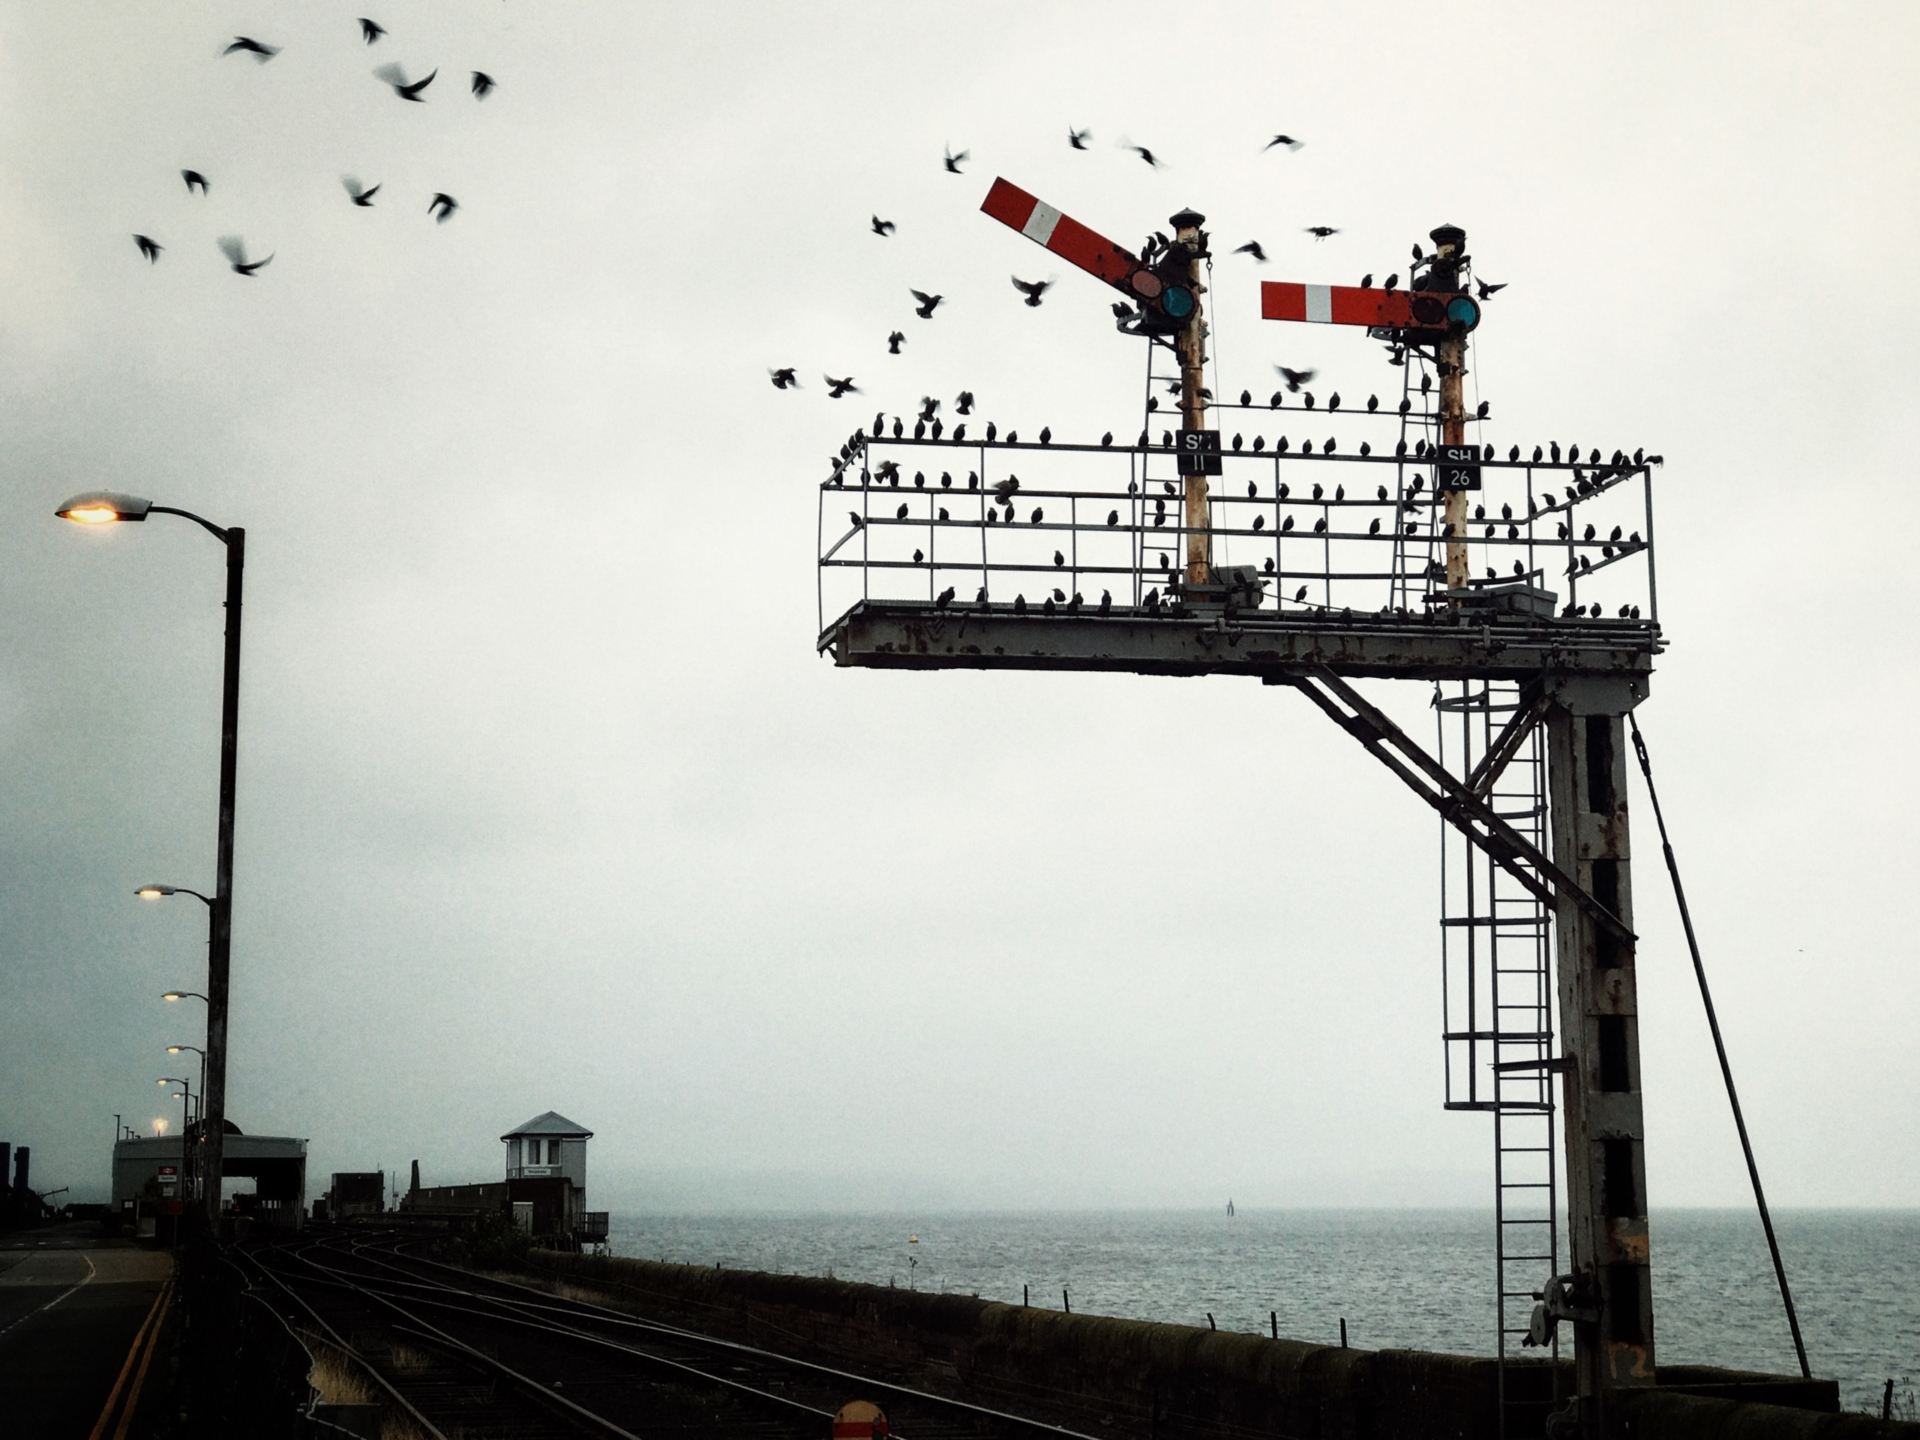 Starlings roosting on the semaphore signal outside Stranraer railway station